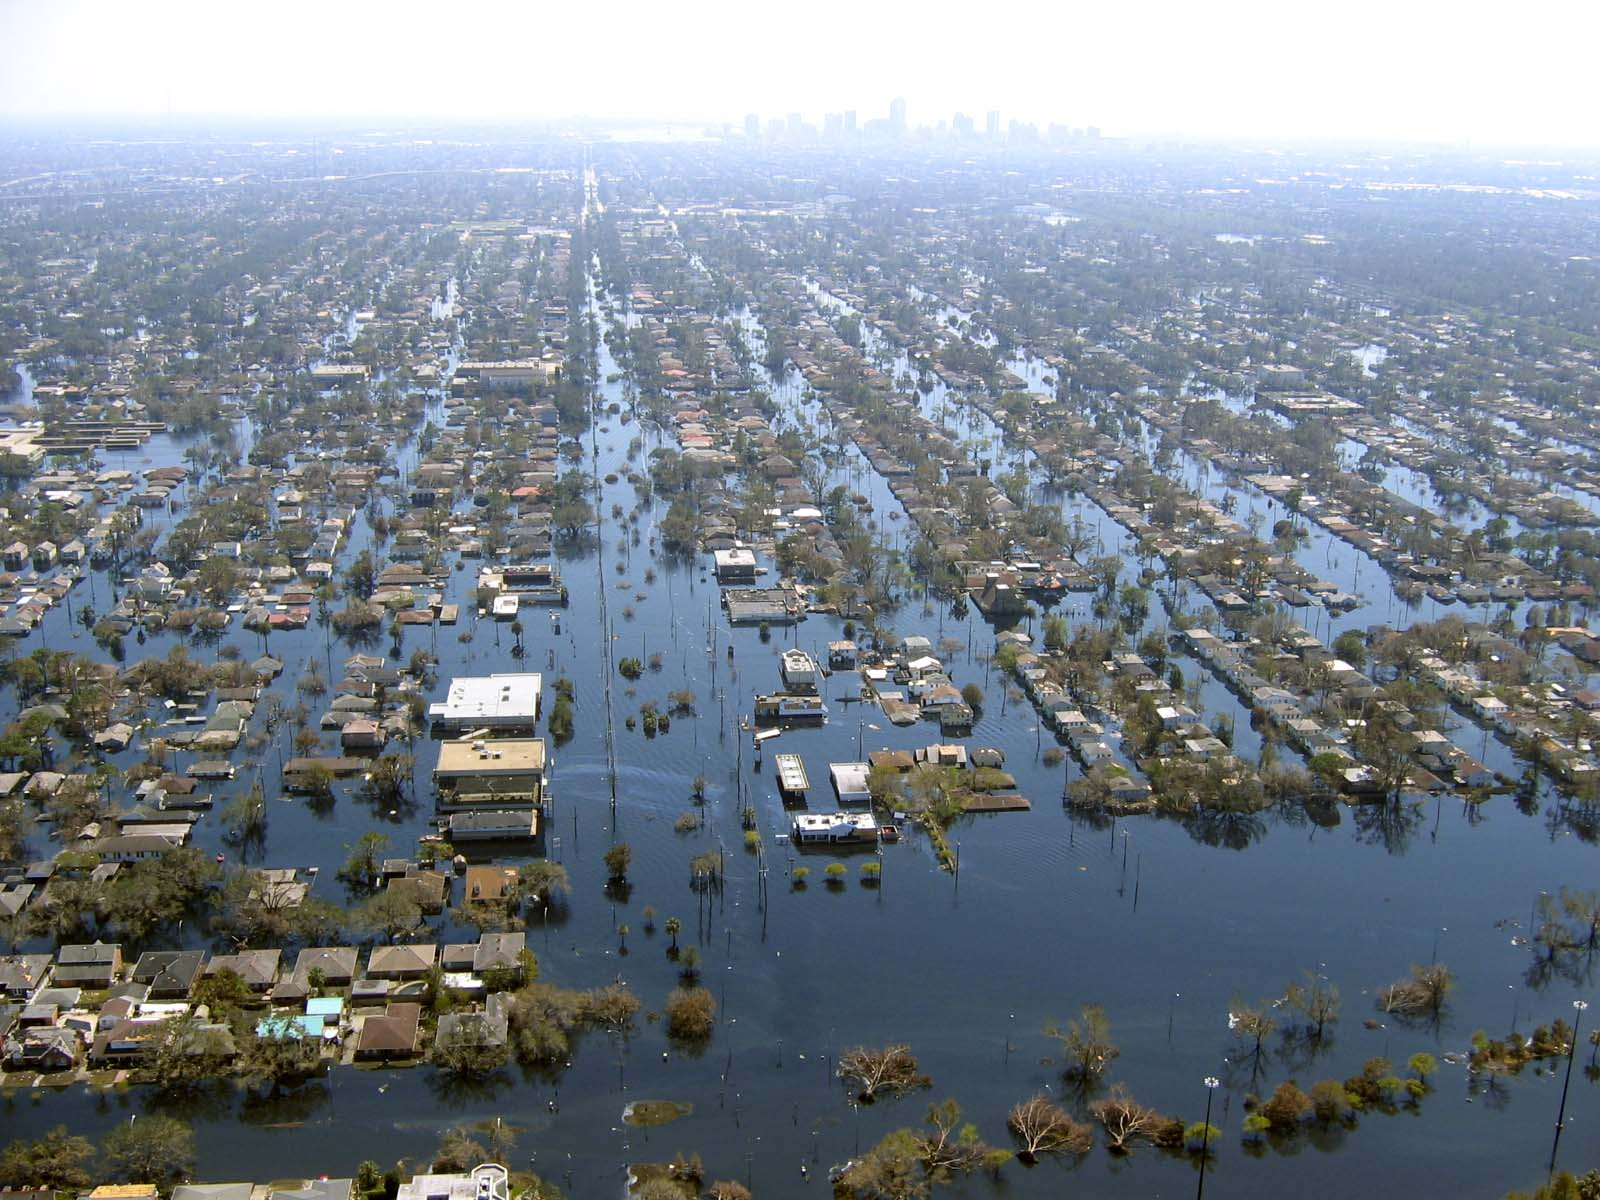 New Orleans underwater after Katrina (http://densitykatrina.wordpress ...